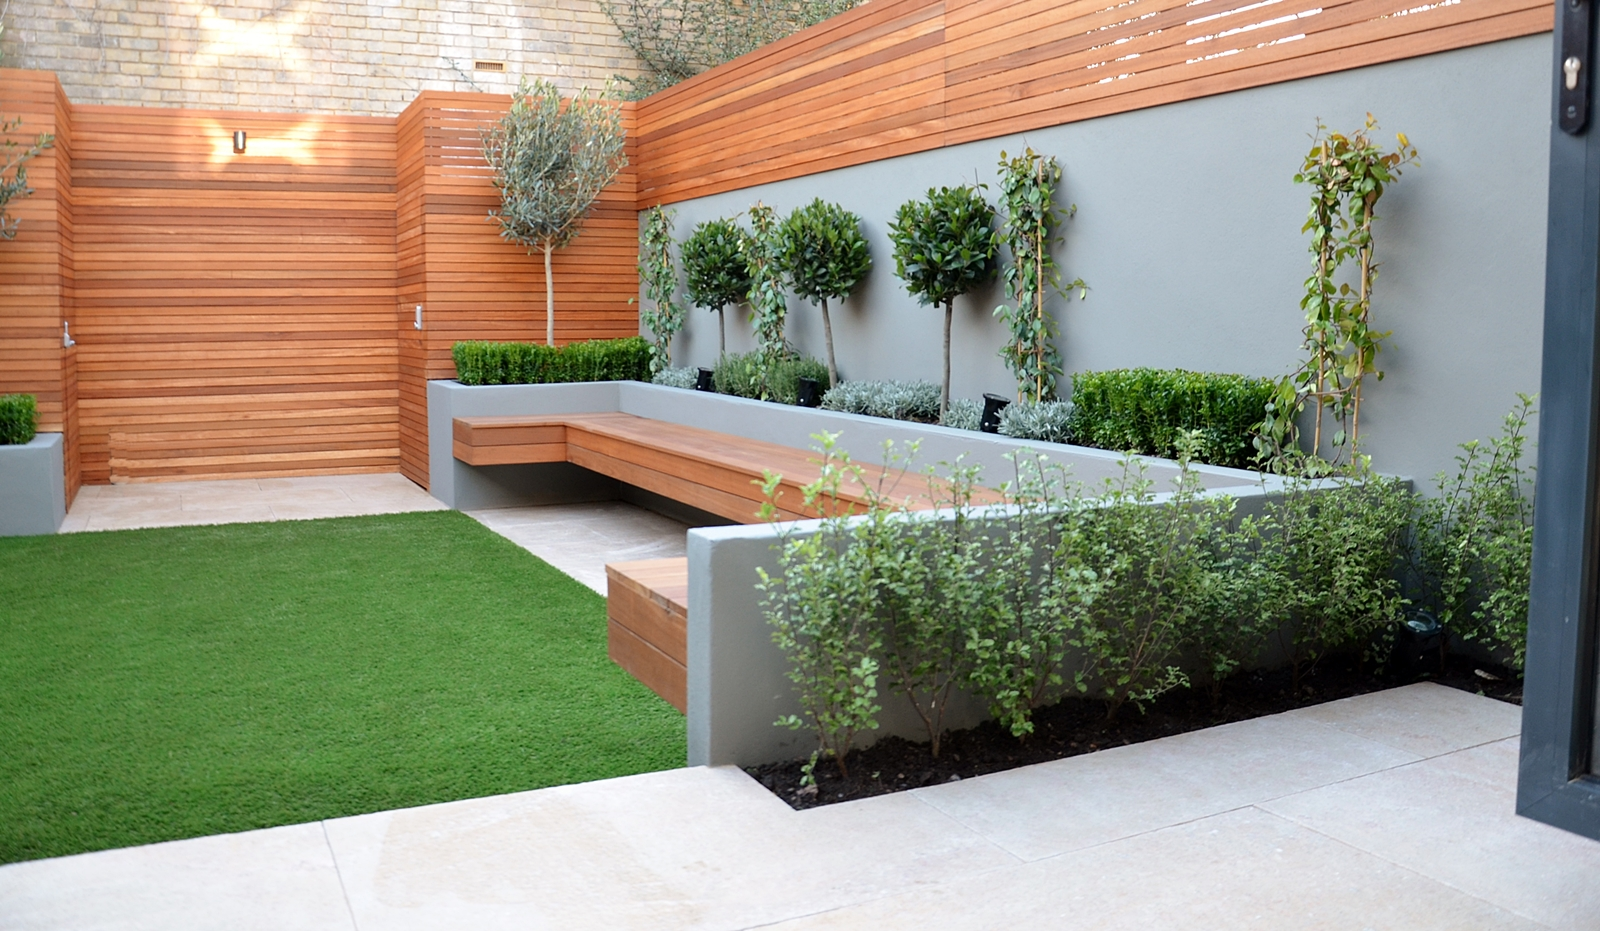 Clapham and london garden design 2015 for Contemporary garden ideas